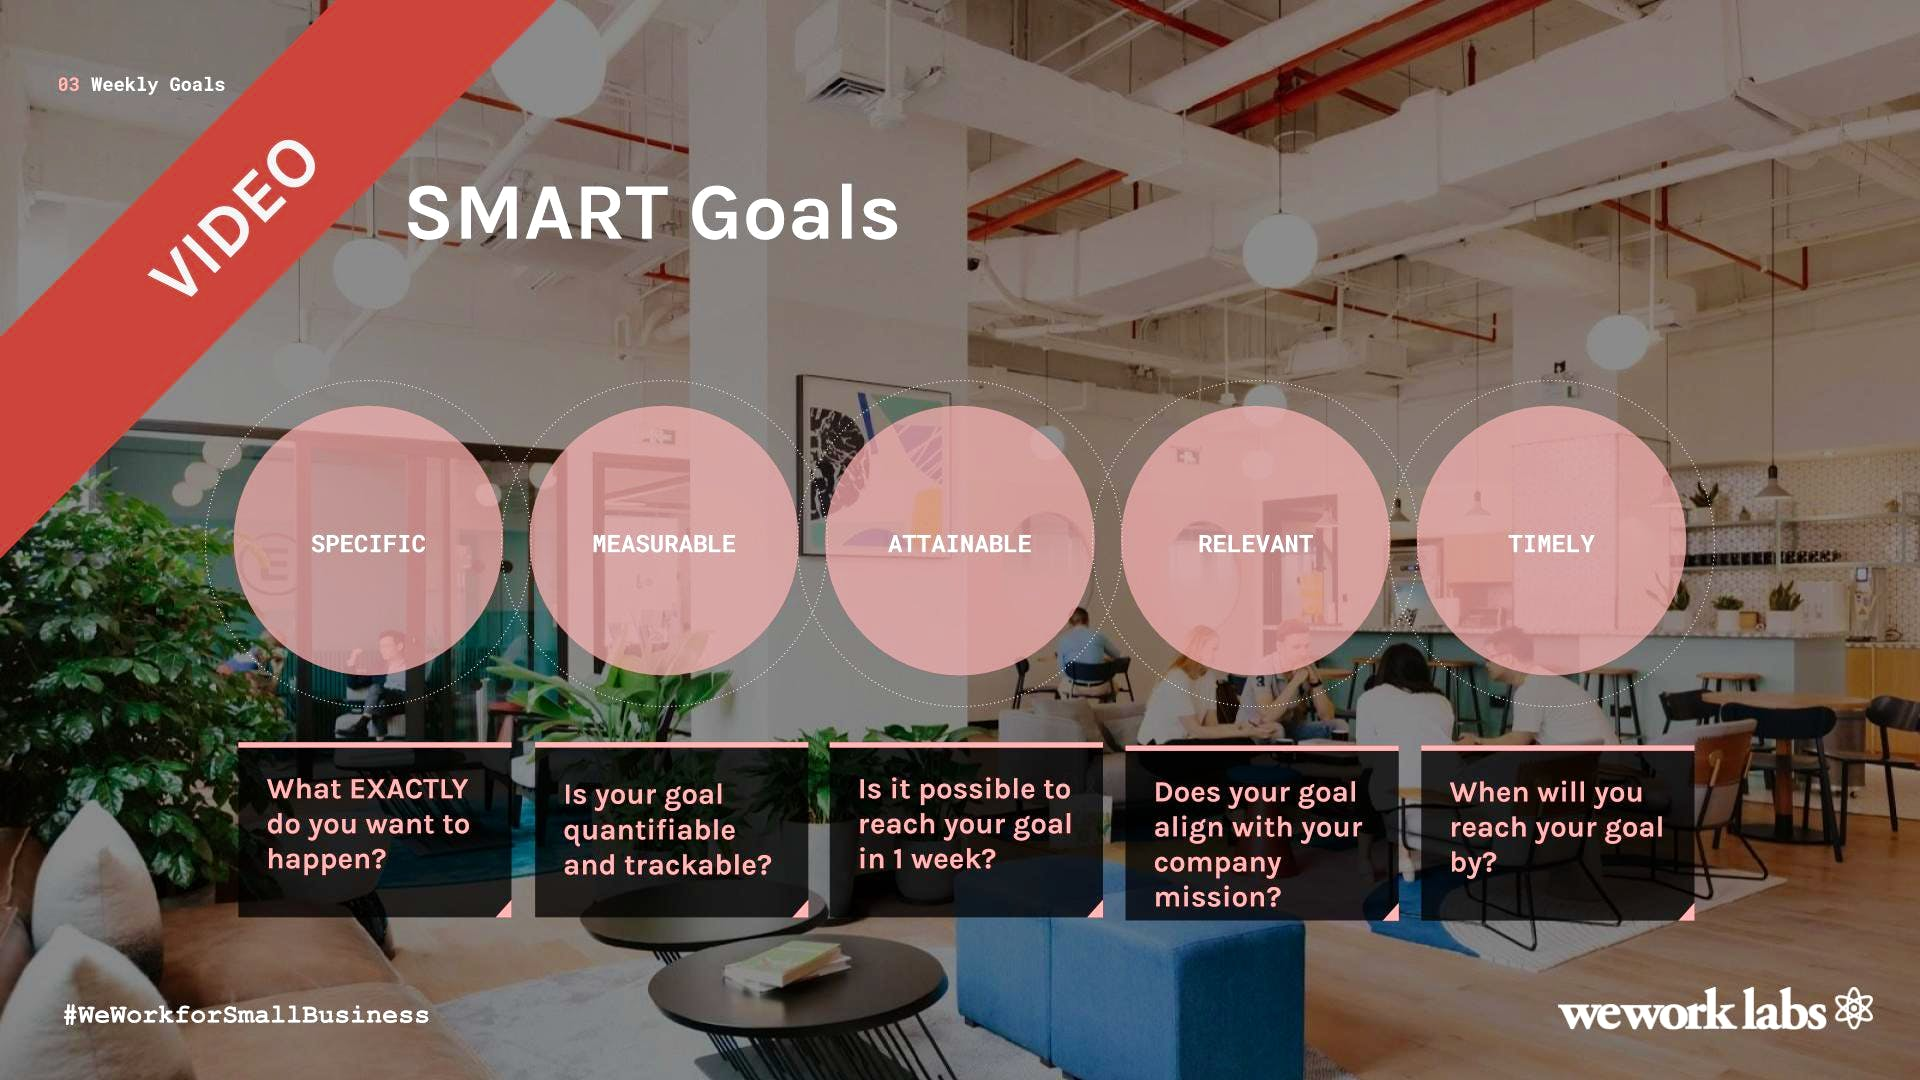 WeWork Labs Small Business Program Israel - How to set up your SMART goals